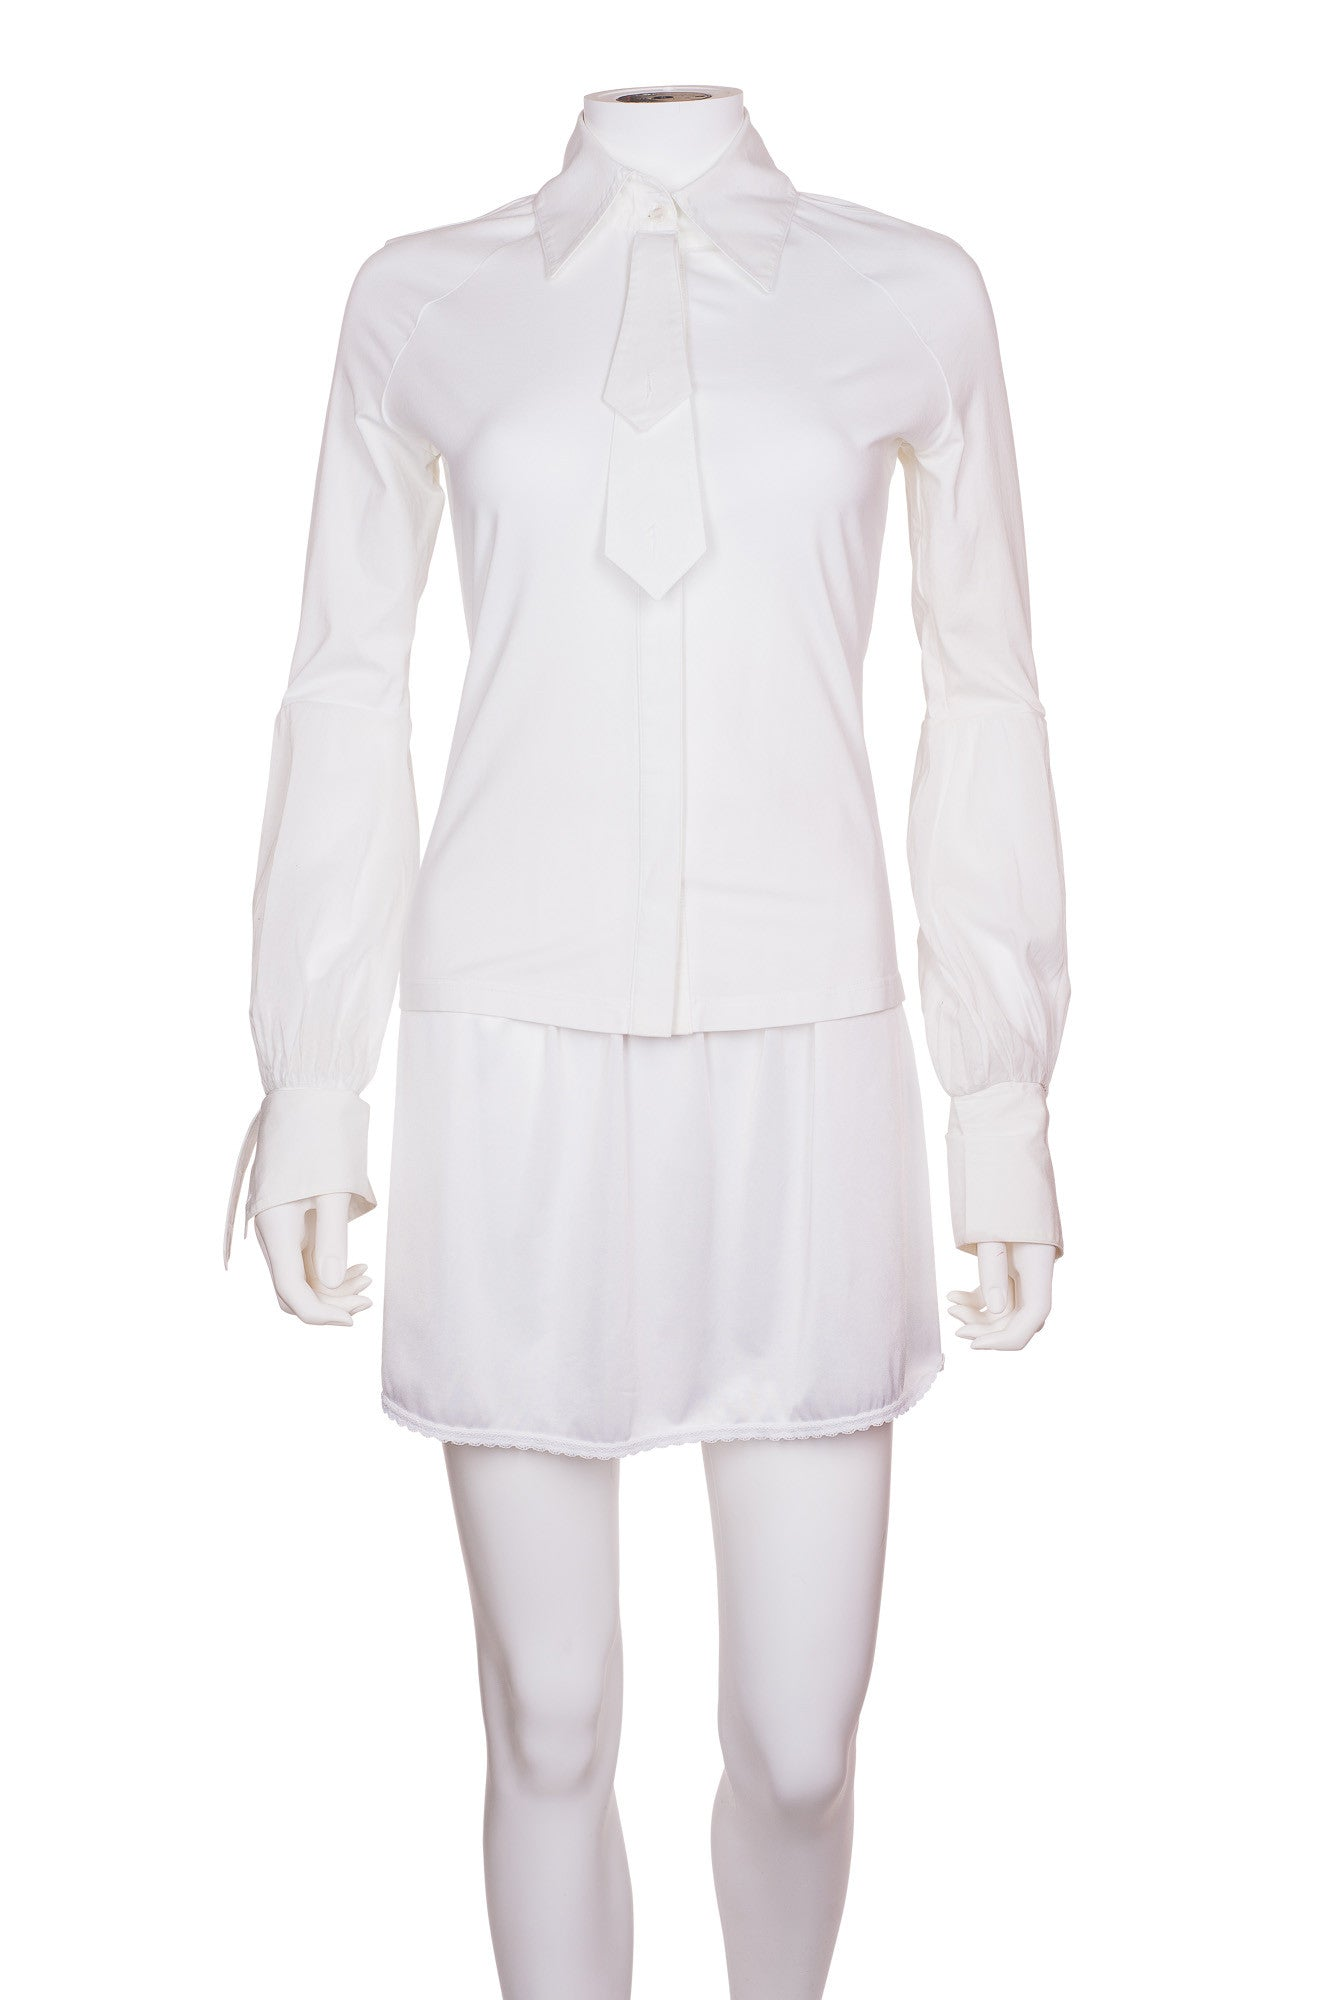 ANNE FONTAINE Tie Embellished Long Sleeve Shirt